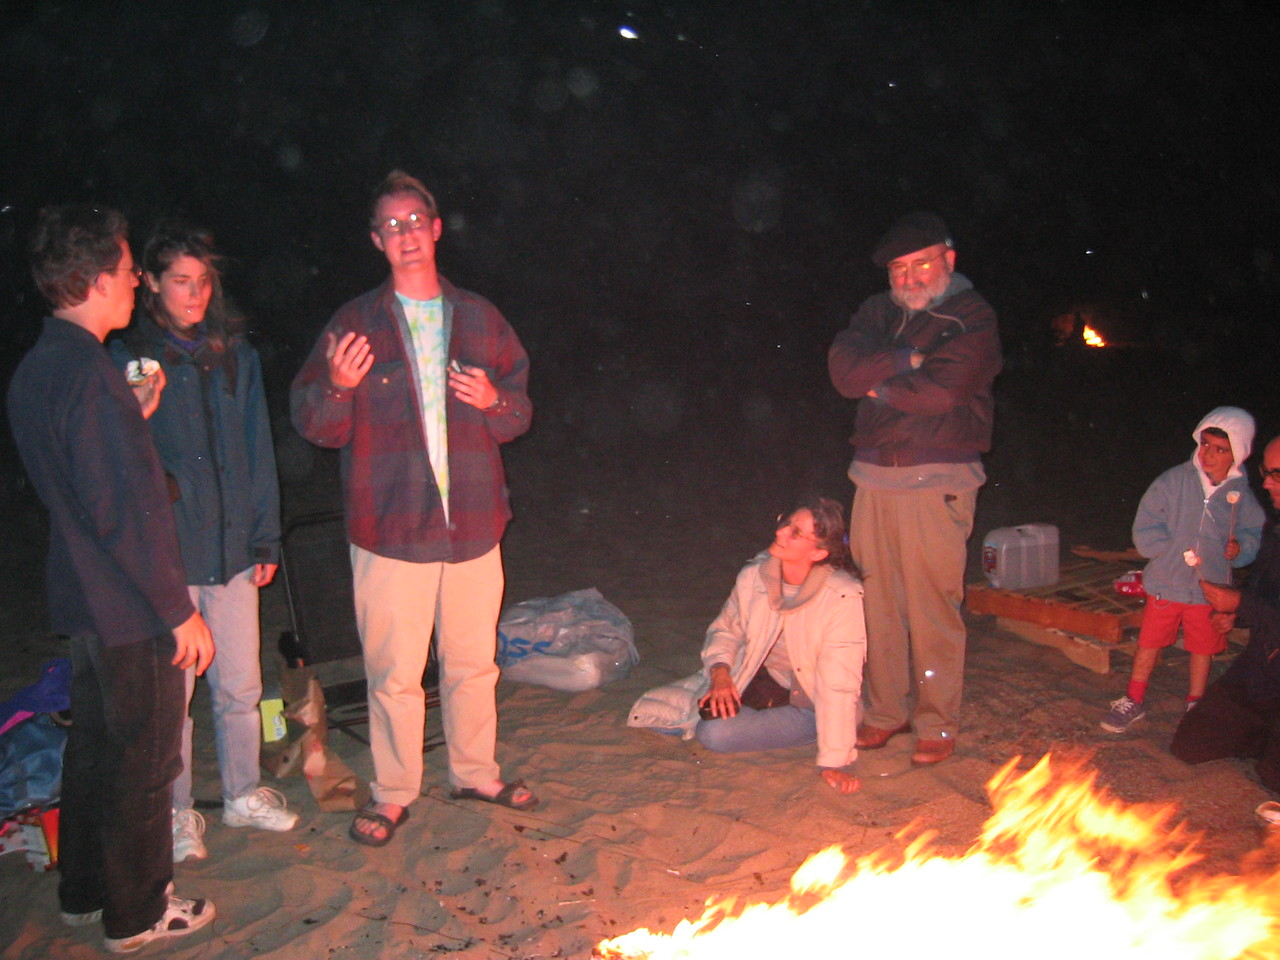 Saying so around fire - Group 2 with flash